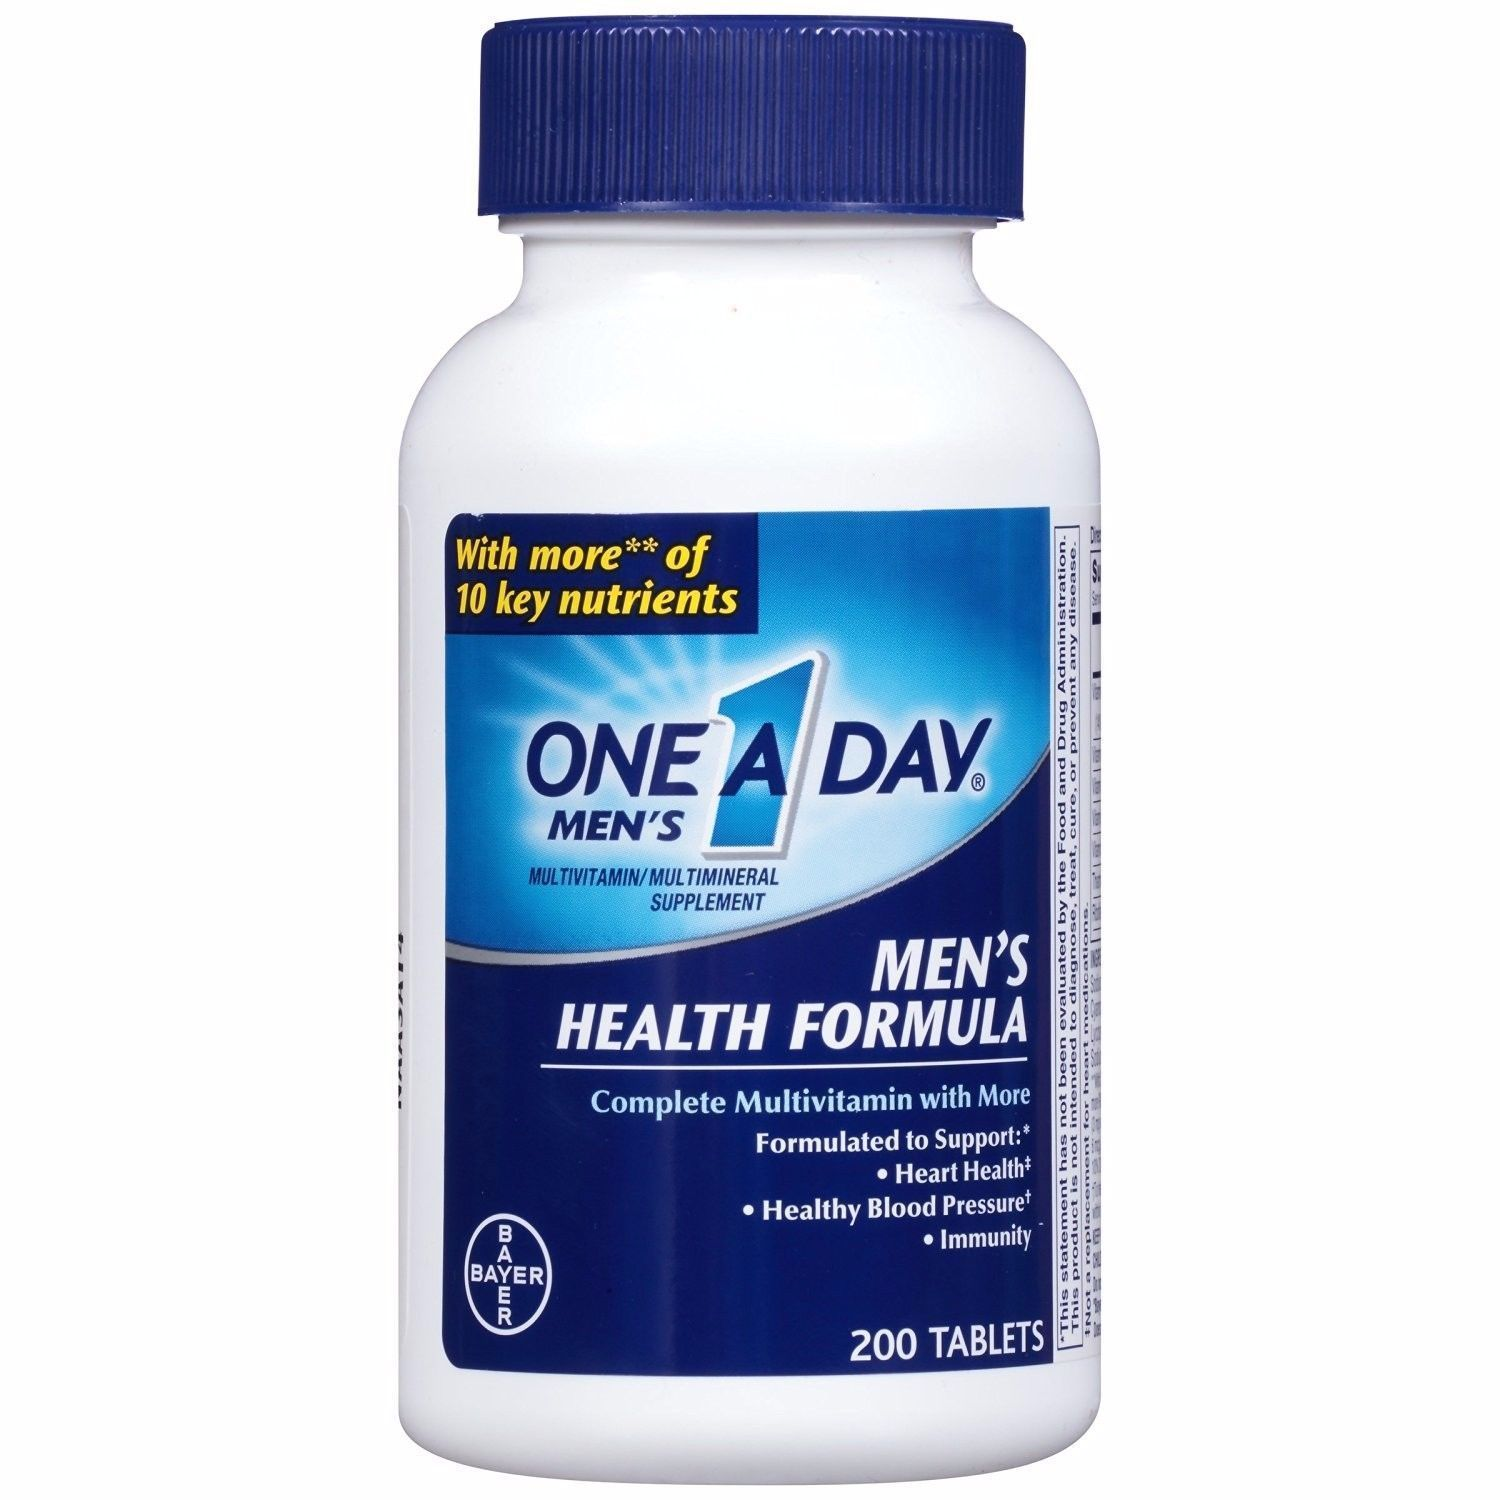 One A Day Men S Health Formula Complete Multivitamin Tablets 200 Ct Work Out Wear Multivitamin Tablets Multivitamin Immune Health